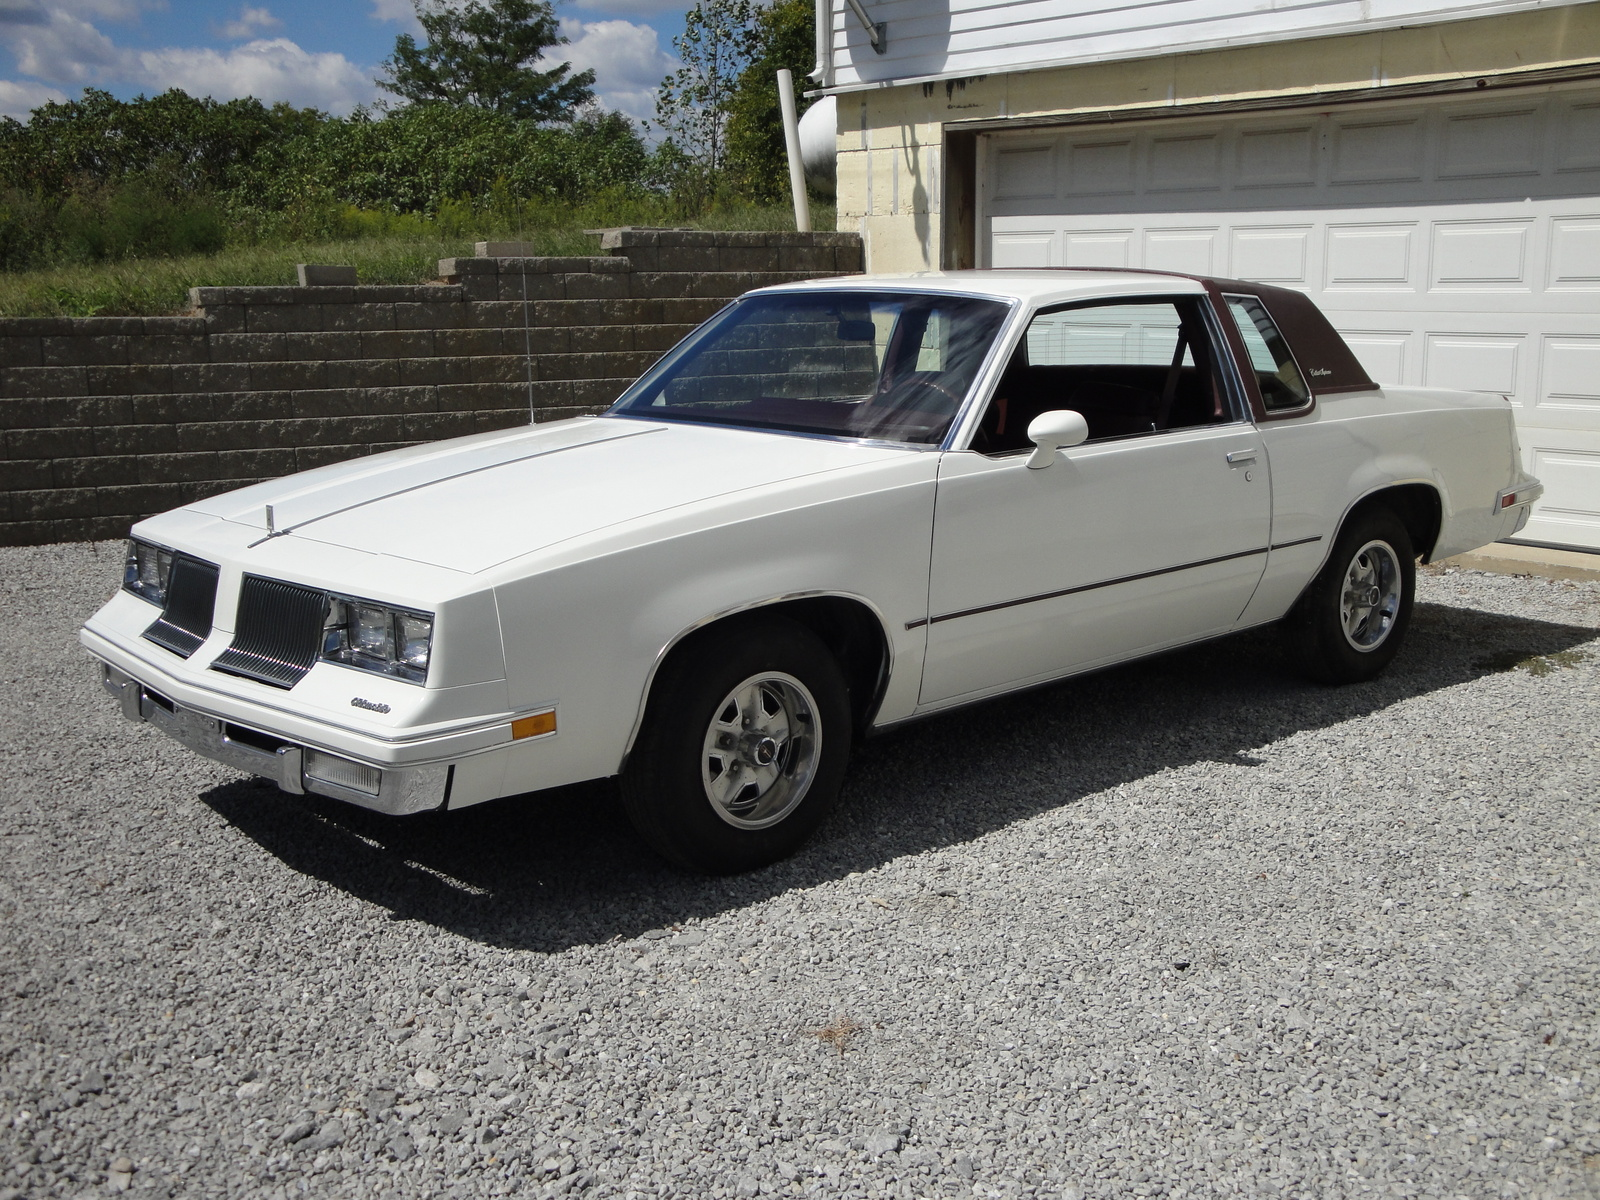 1981 Oldsmobile Cutlass Supreme - Pictures - CarGurus